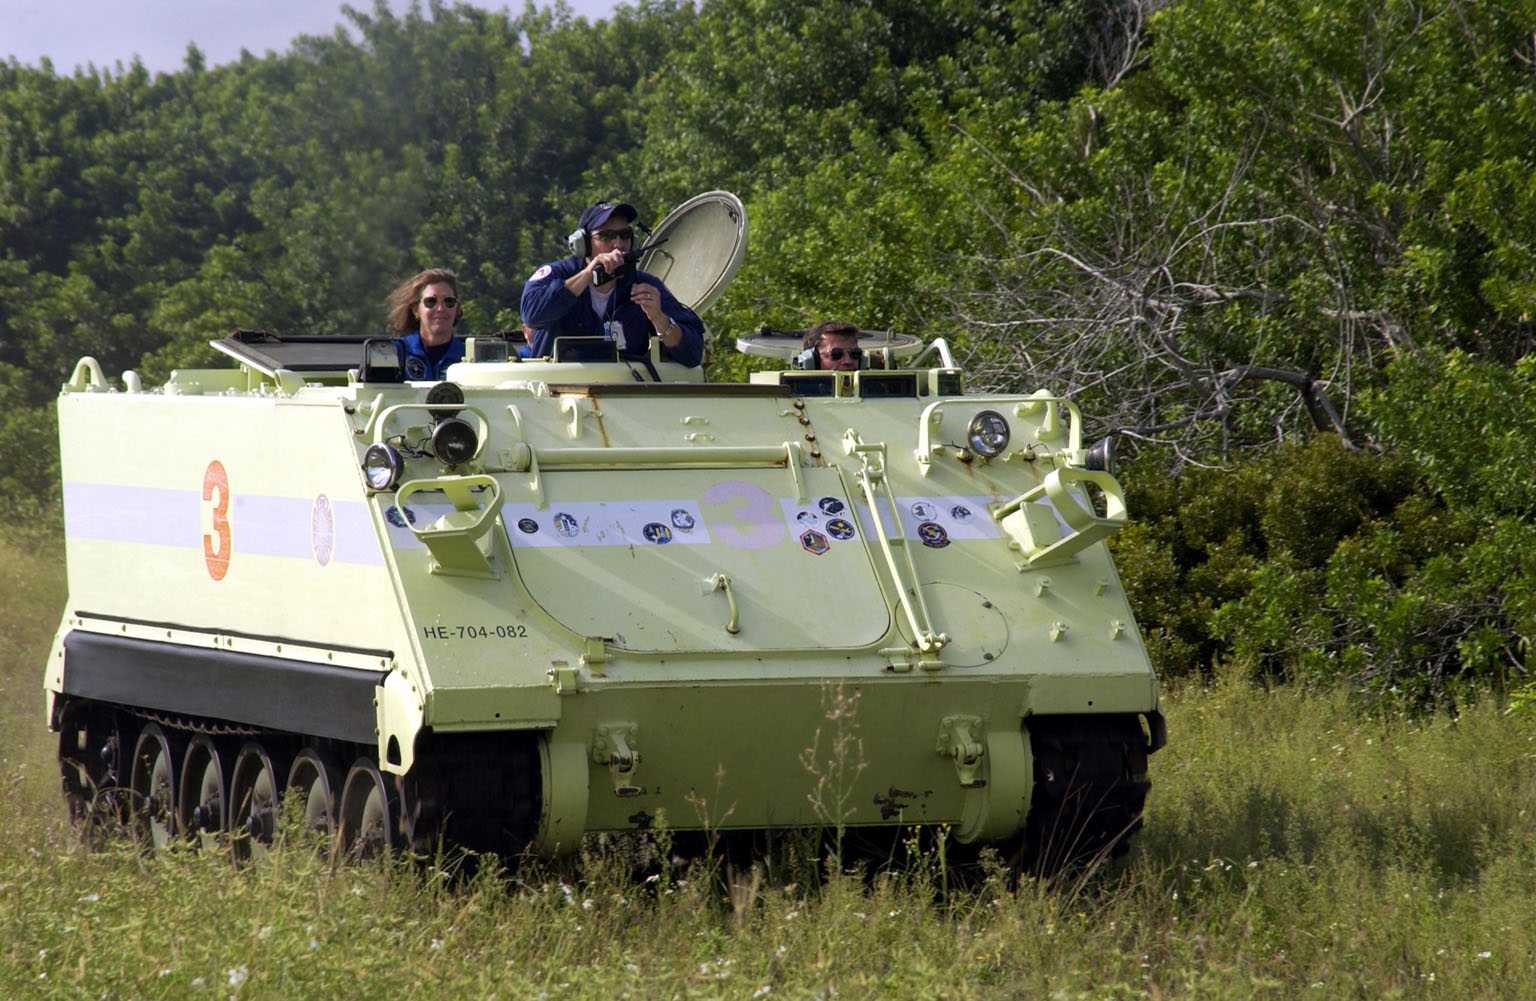 KENNEDY SPACE CENTER, Fla. - STS-112 Commander Jeffrey Ashby drives the M-113 armored personnel carrier during Terminal Countdown Demonstration Test activities. At the far left is Mission Specialist Sandra Magnus. The TCDT also includes a simulated launch countdown. The mission aboard Space Shuttle Atlantis is scheduled to launch no earlier than Oct. 2, between 2 and 6 p.m. EDT. STS-112 is the 15th assembly mission to the International Space Station. Atlantis will be carrying the S1 Integrated Truss Structure, the first starboard truss segment. The S1 will be attached to the central truss segment, S0, during the 11-day mission.